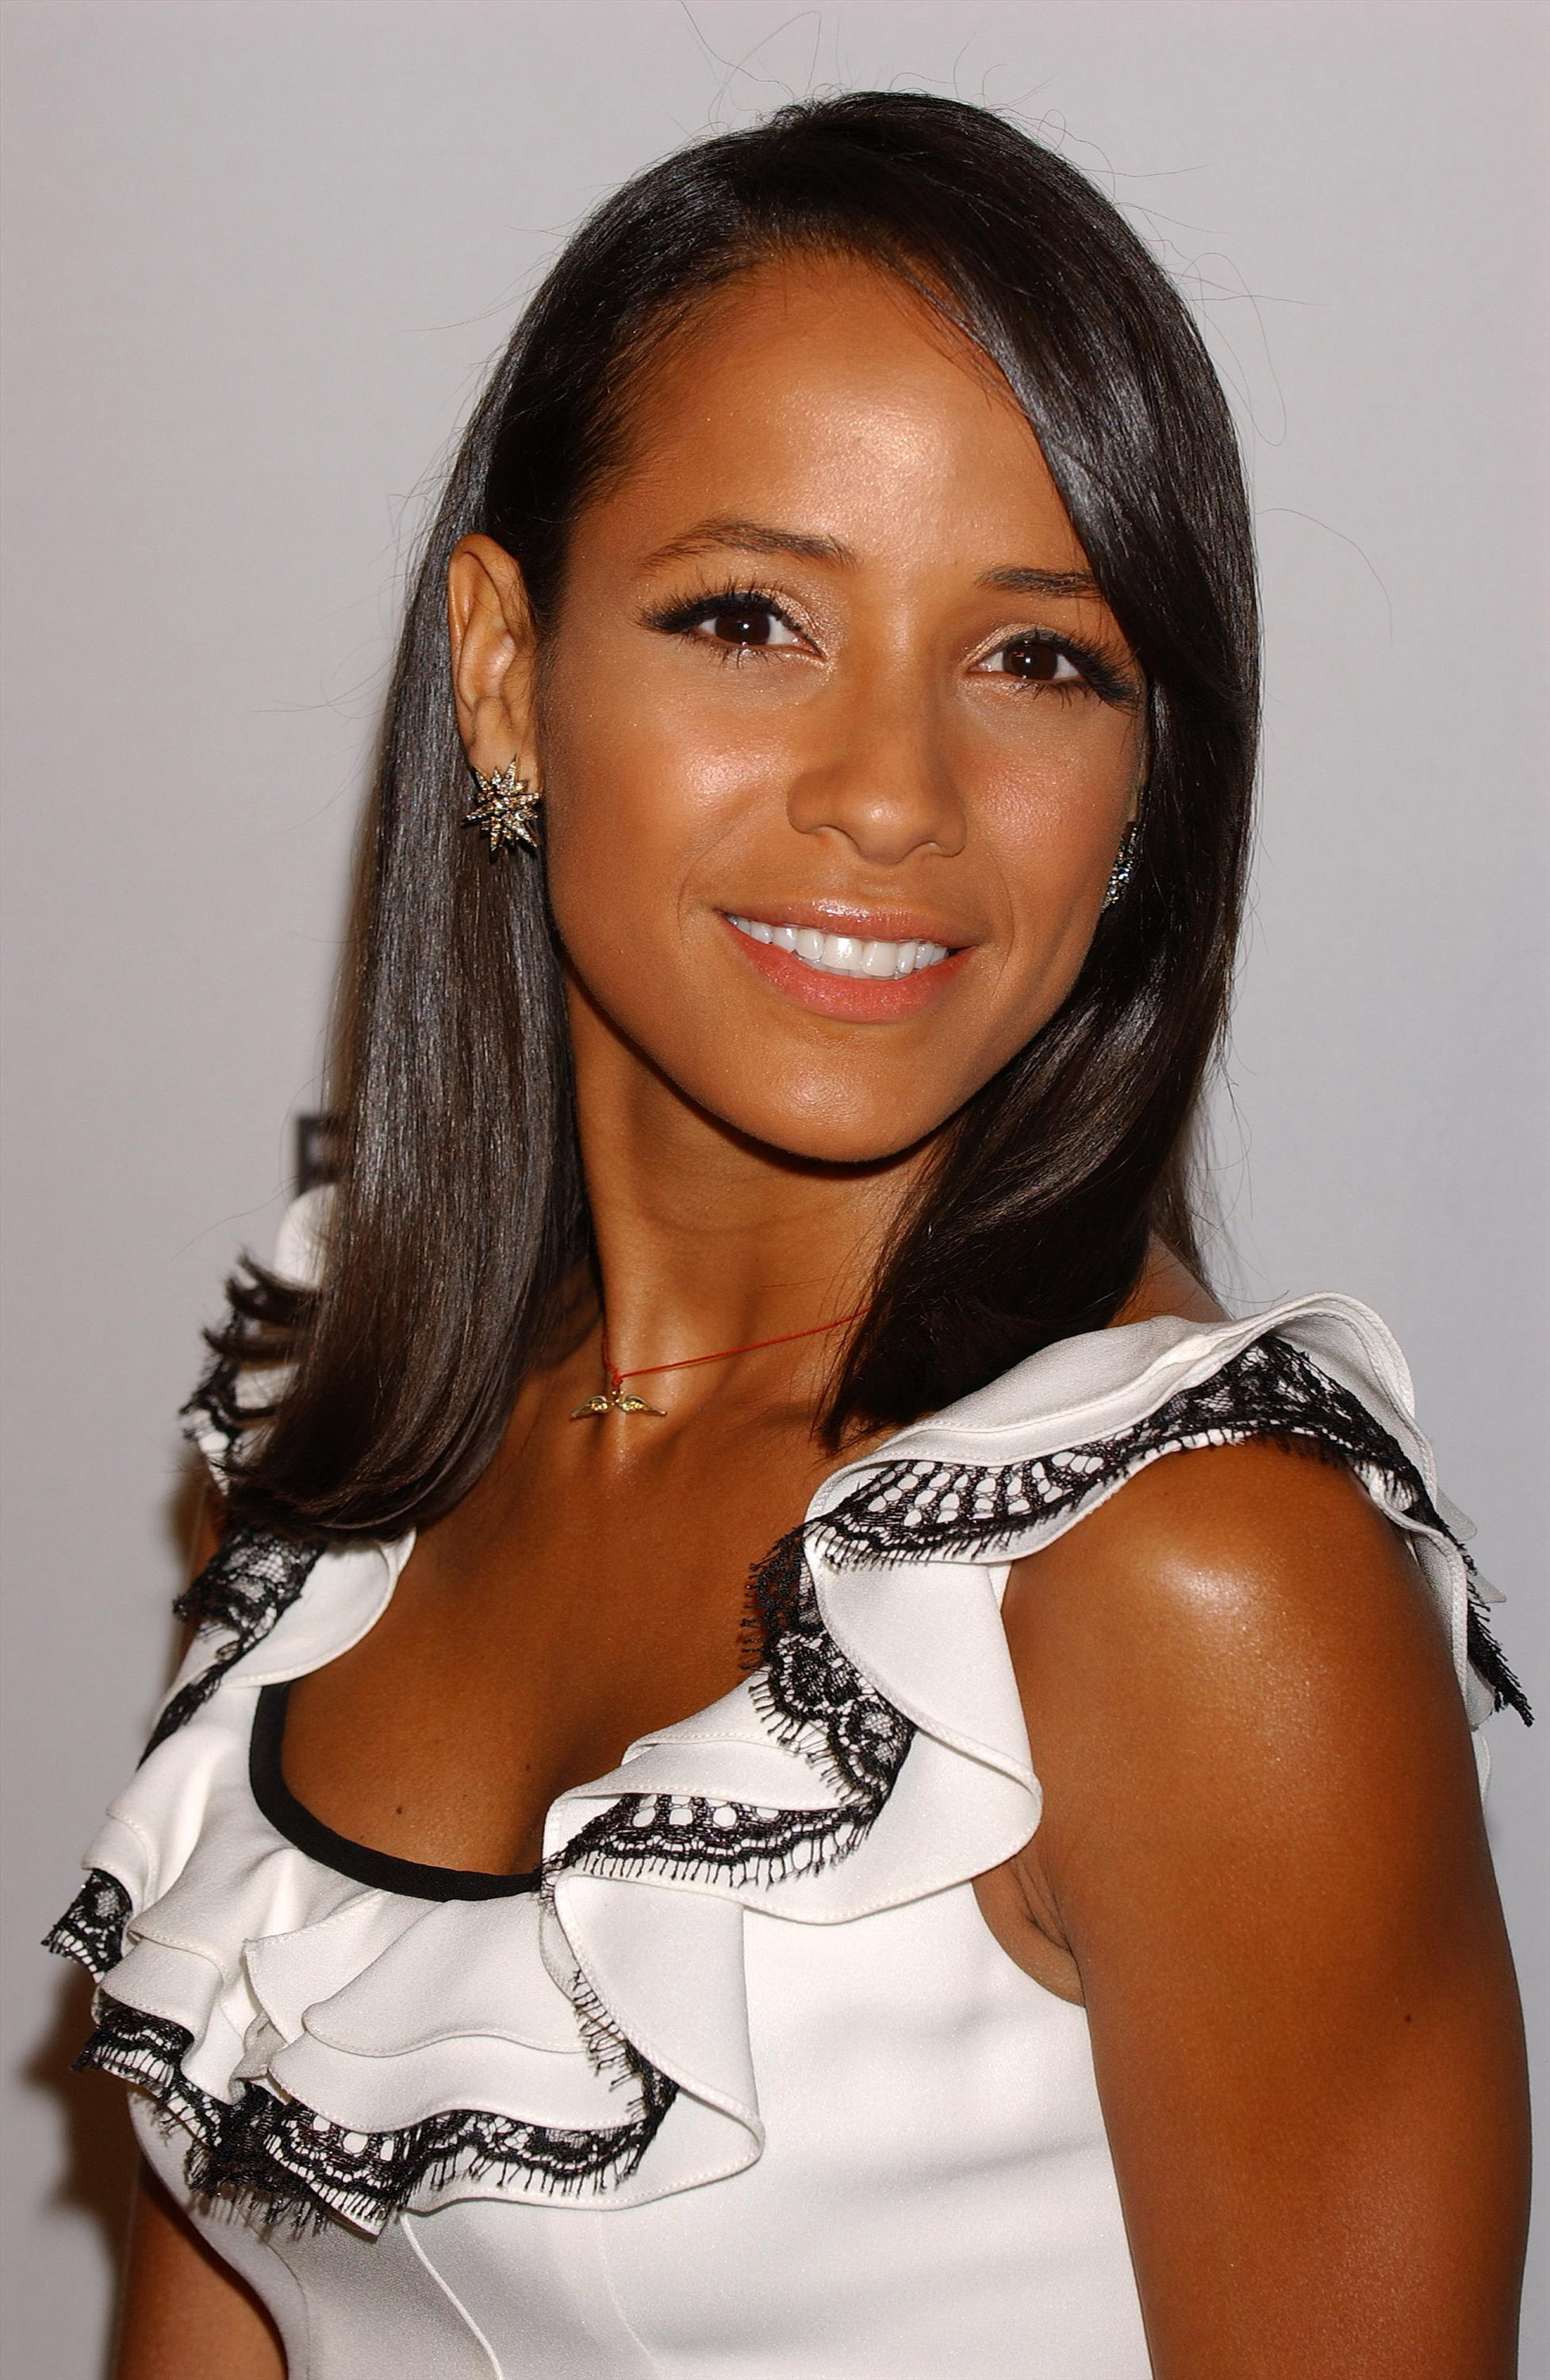 Dania Ramirez photo gallery - 233 high quality pics of Dania Ramirez ...